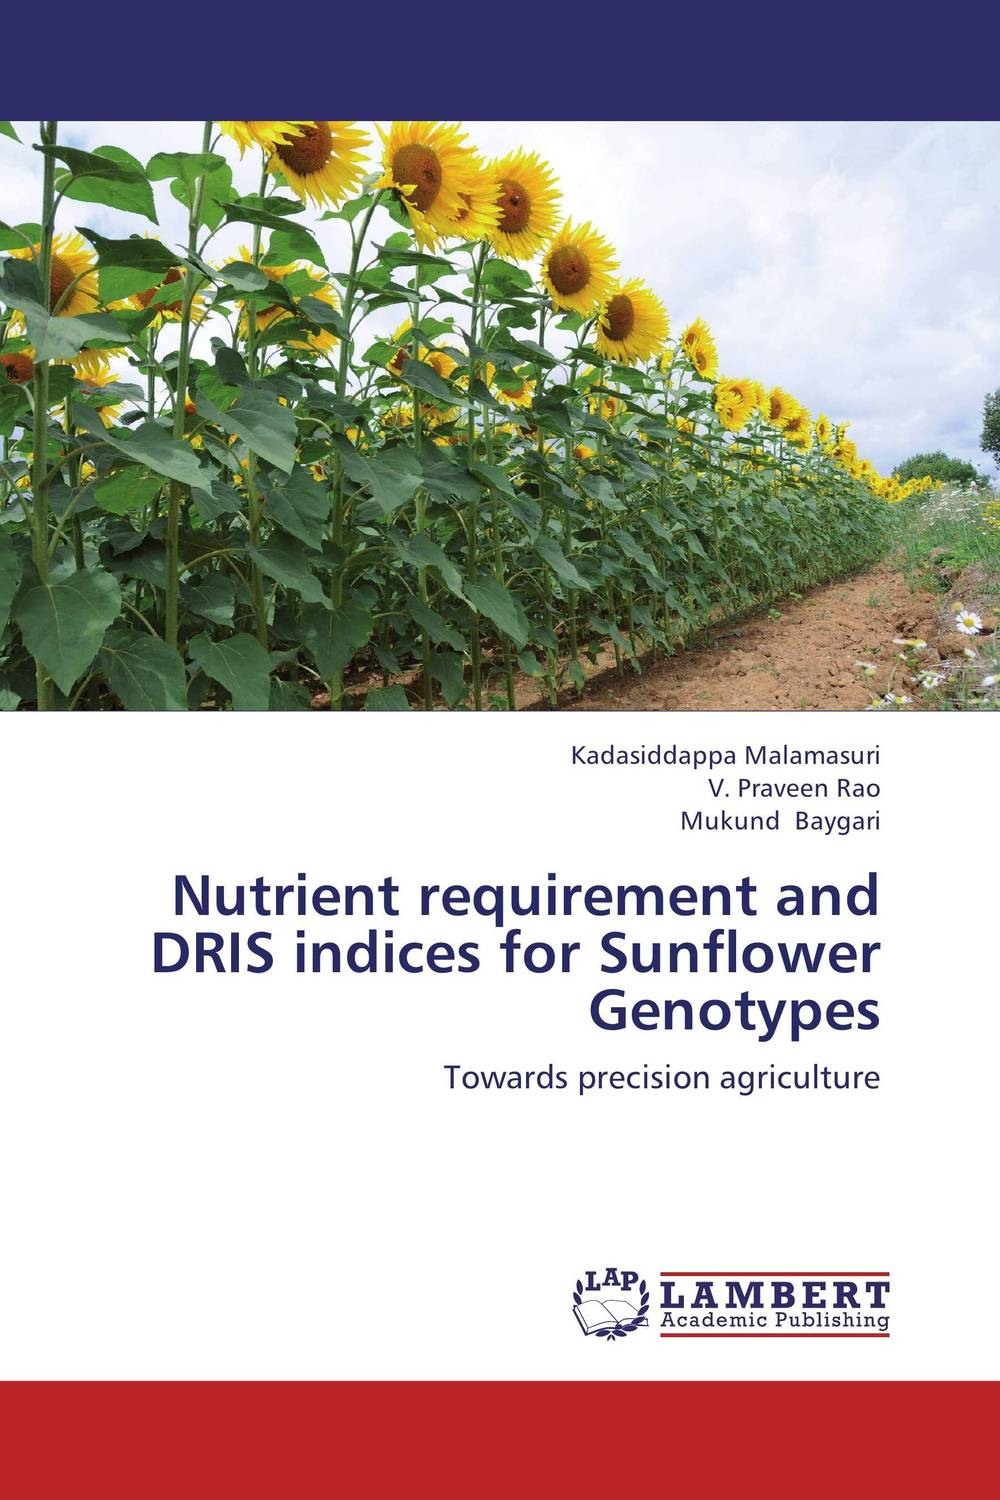 Nutrient requirement and DRIS indices for Sunflower Genotypes